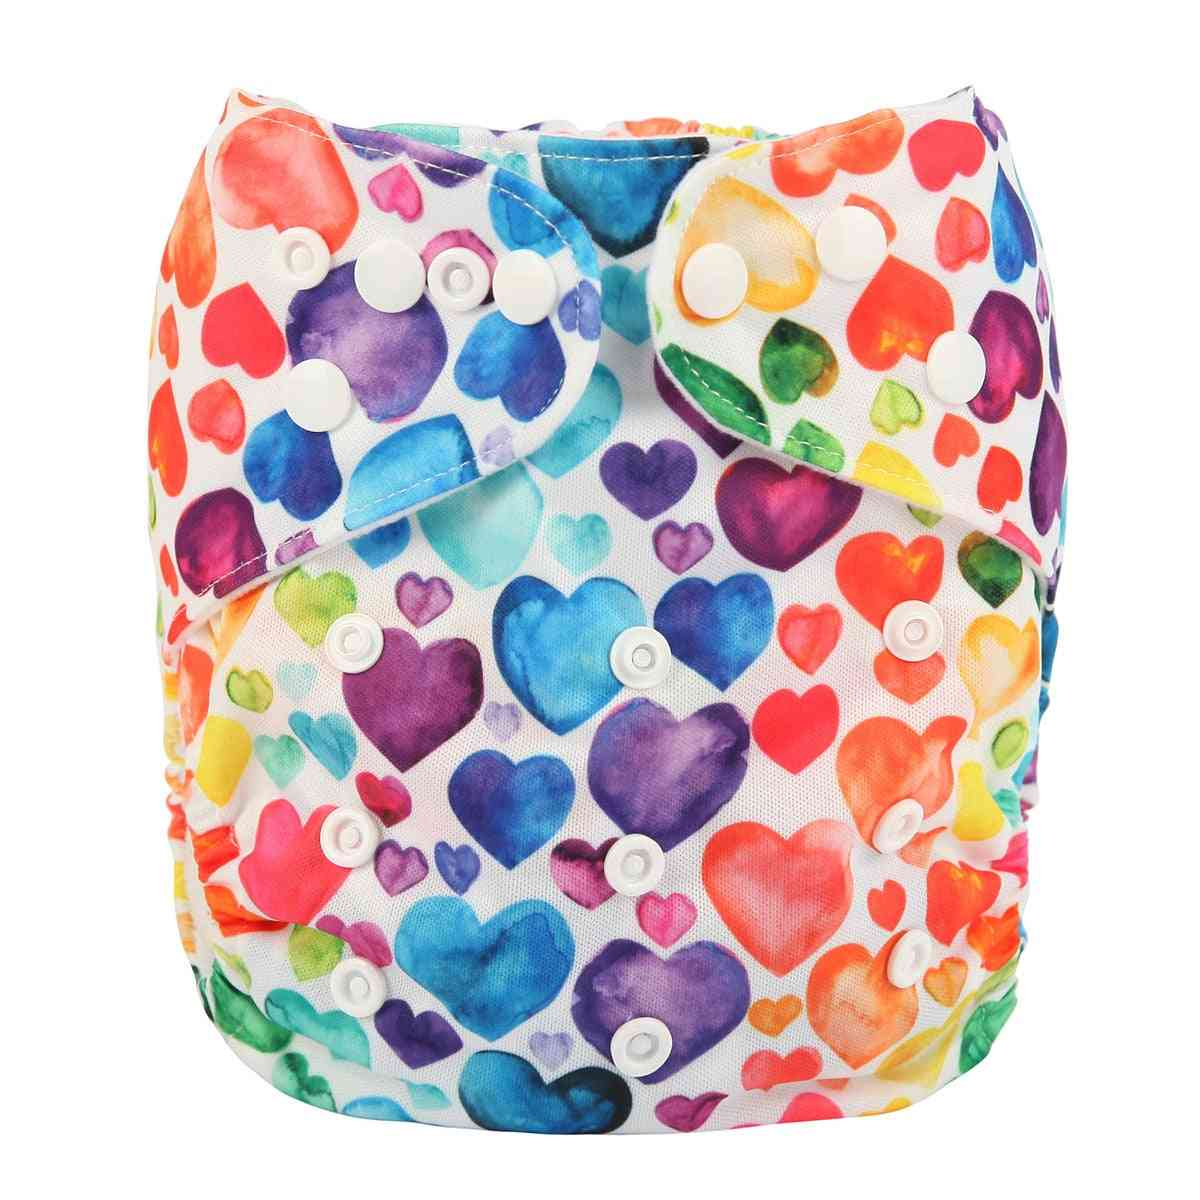 Baby Pocket Cloth Diaper, Nappy, Reusable Adjustable Washable Inner Cloth